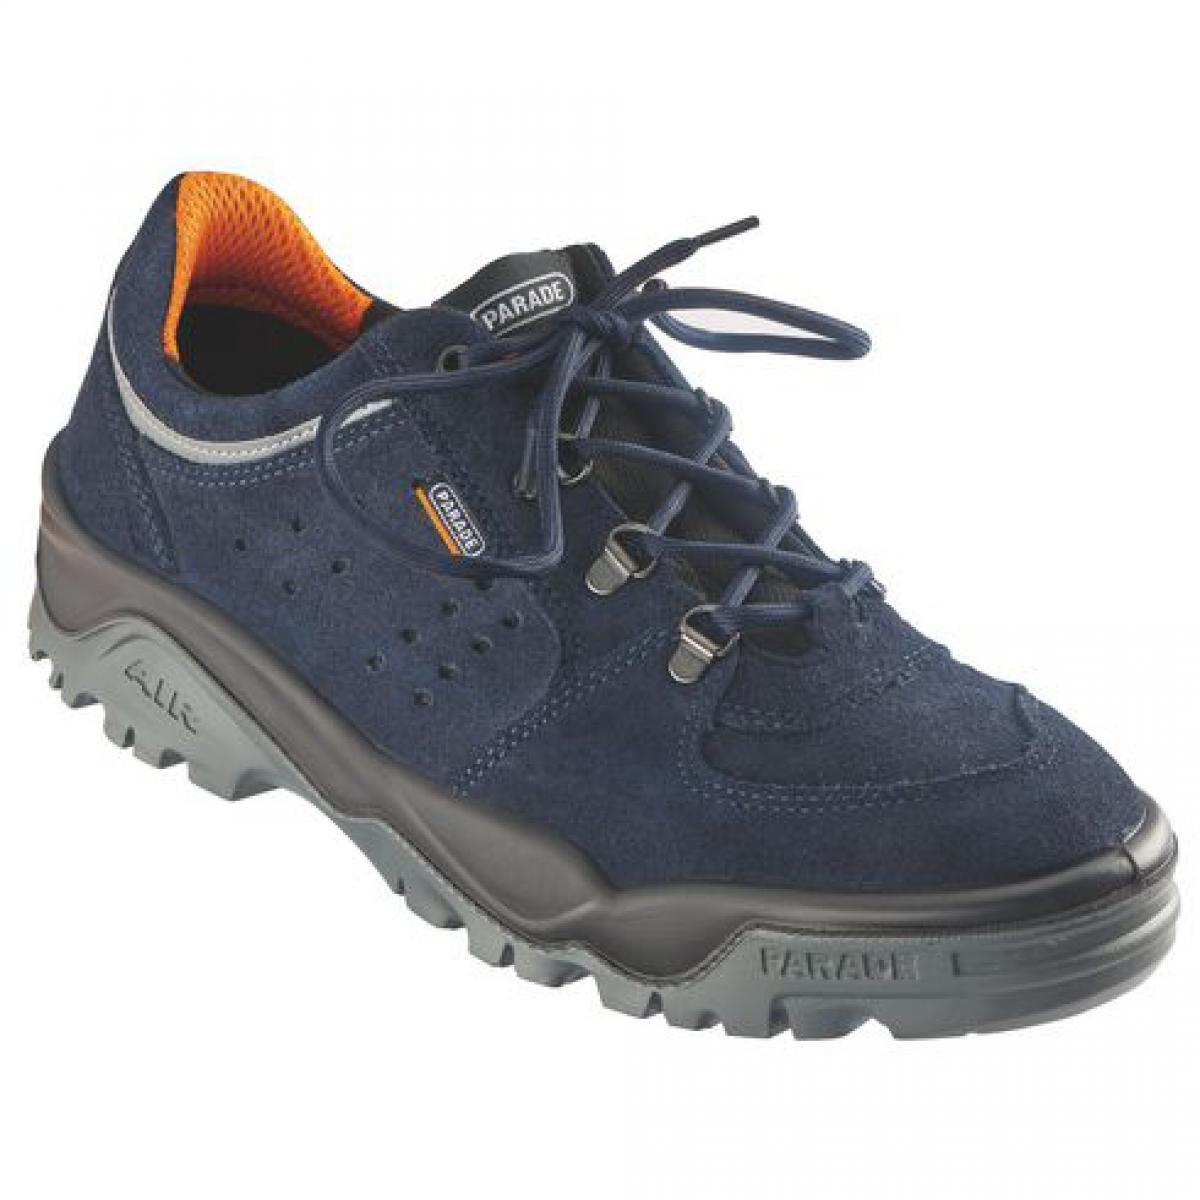 Parade Chaussure Doxo taille 44